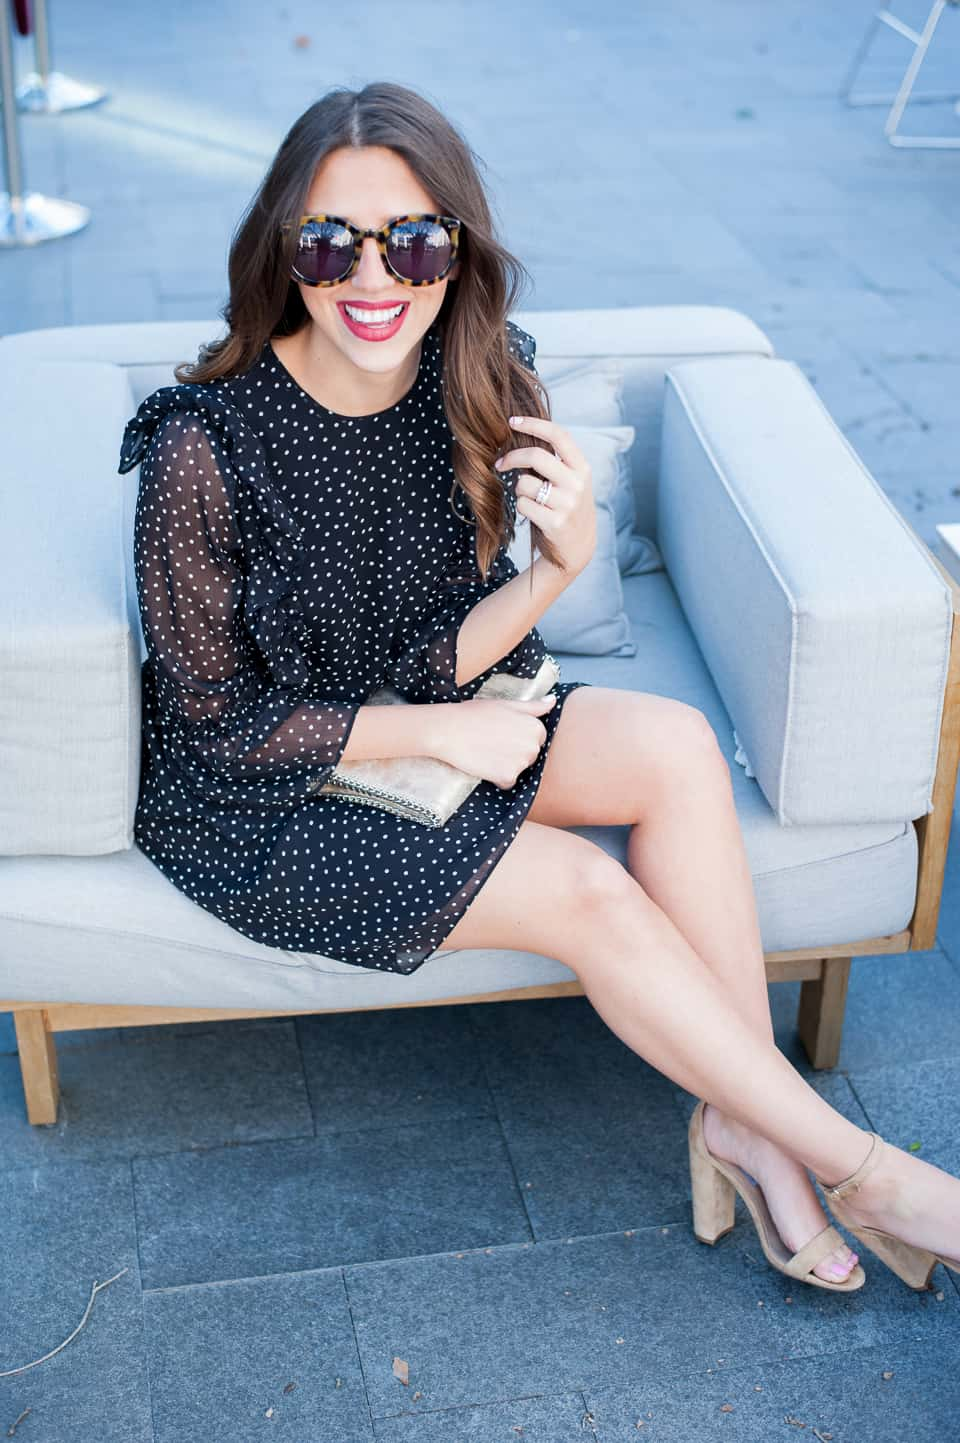 Dress Up Buttercup // A Houston-based fashion travel blog developed to daily inspire your own personal style by Dede Raad | Polkas for Winter